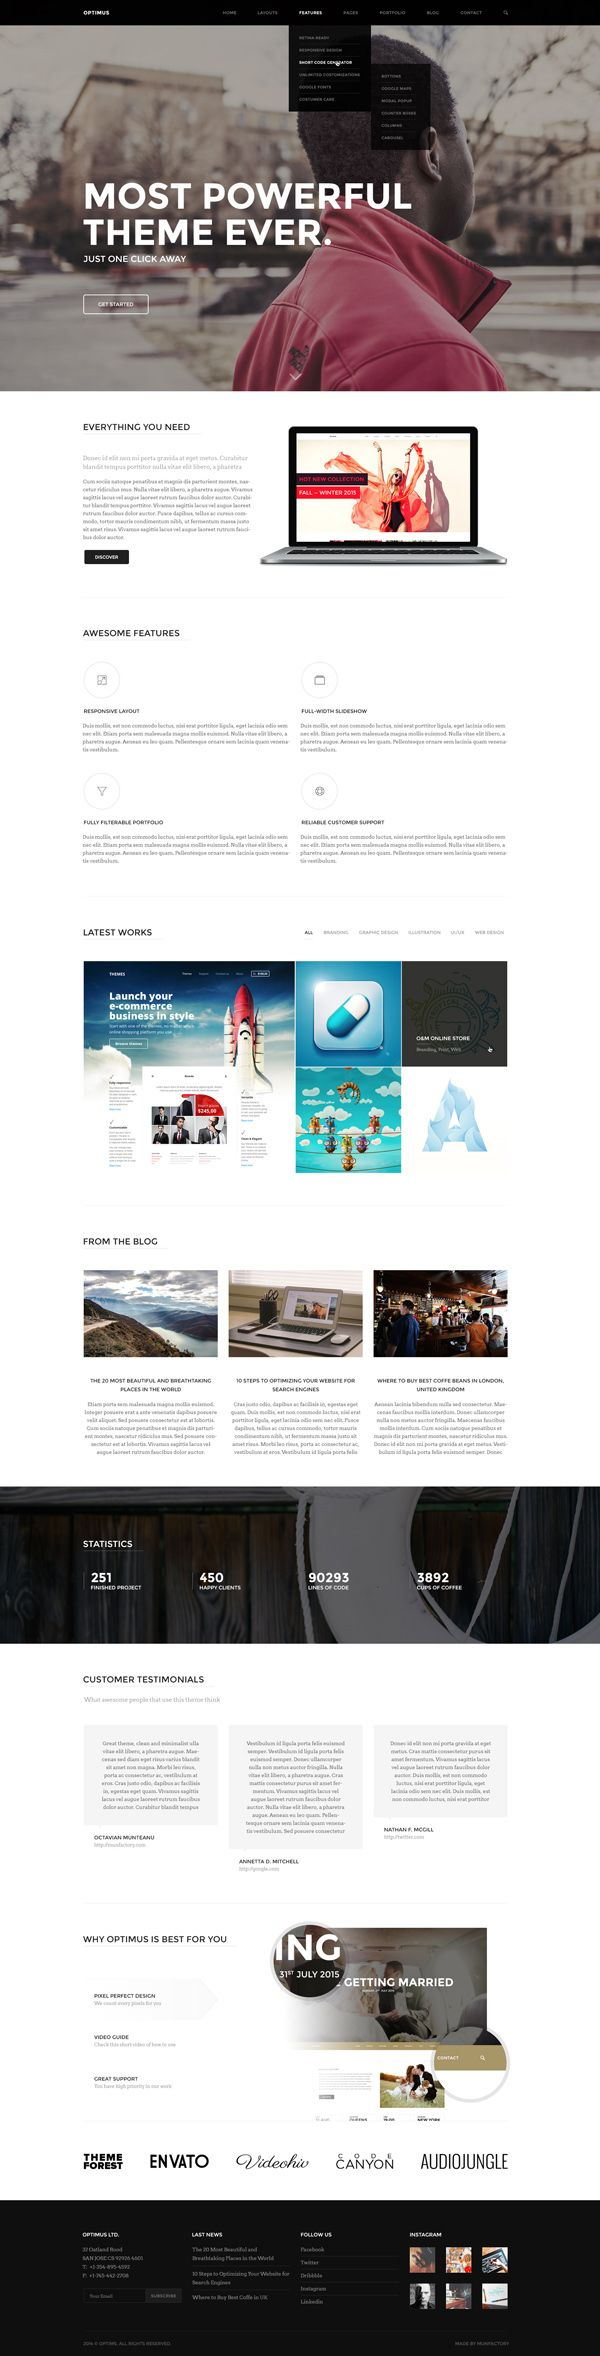 Awesome Css Designs - Optimus a super easy to use multi concept html5